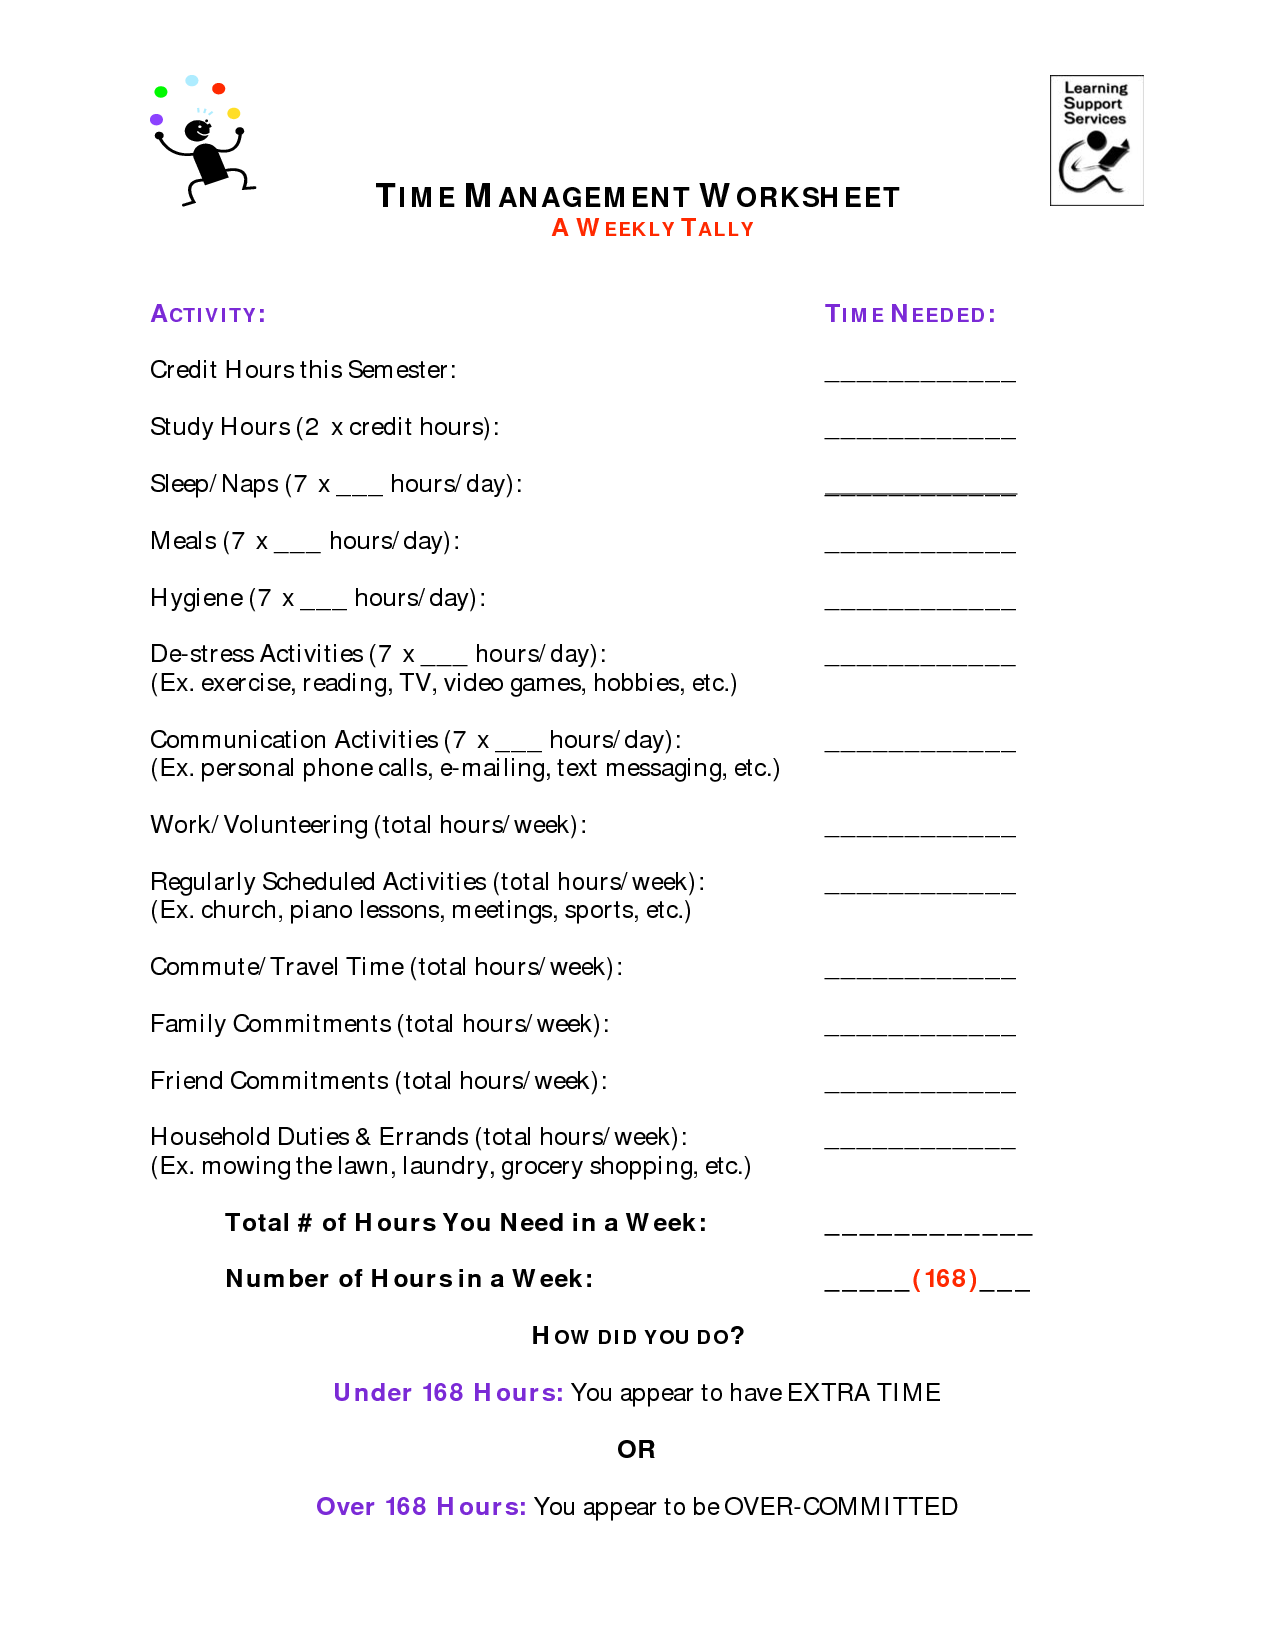 8 Best Images of Stress Management Worksheets - Anxiety ...